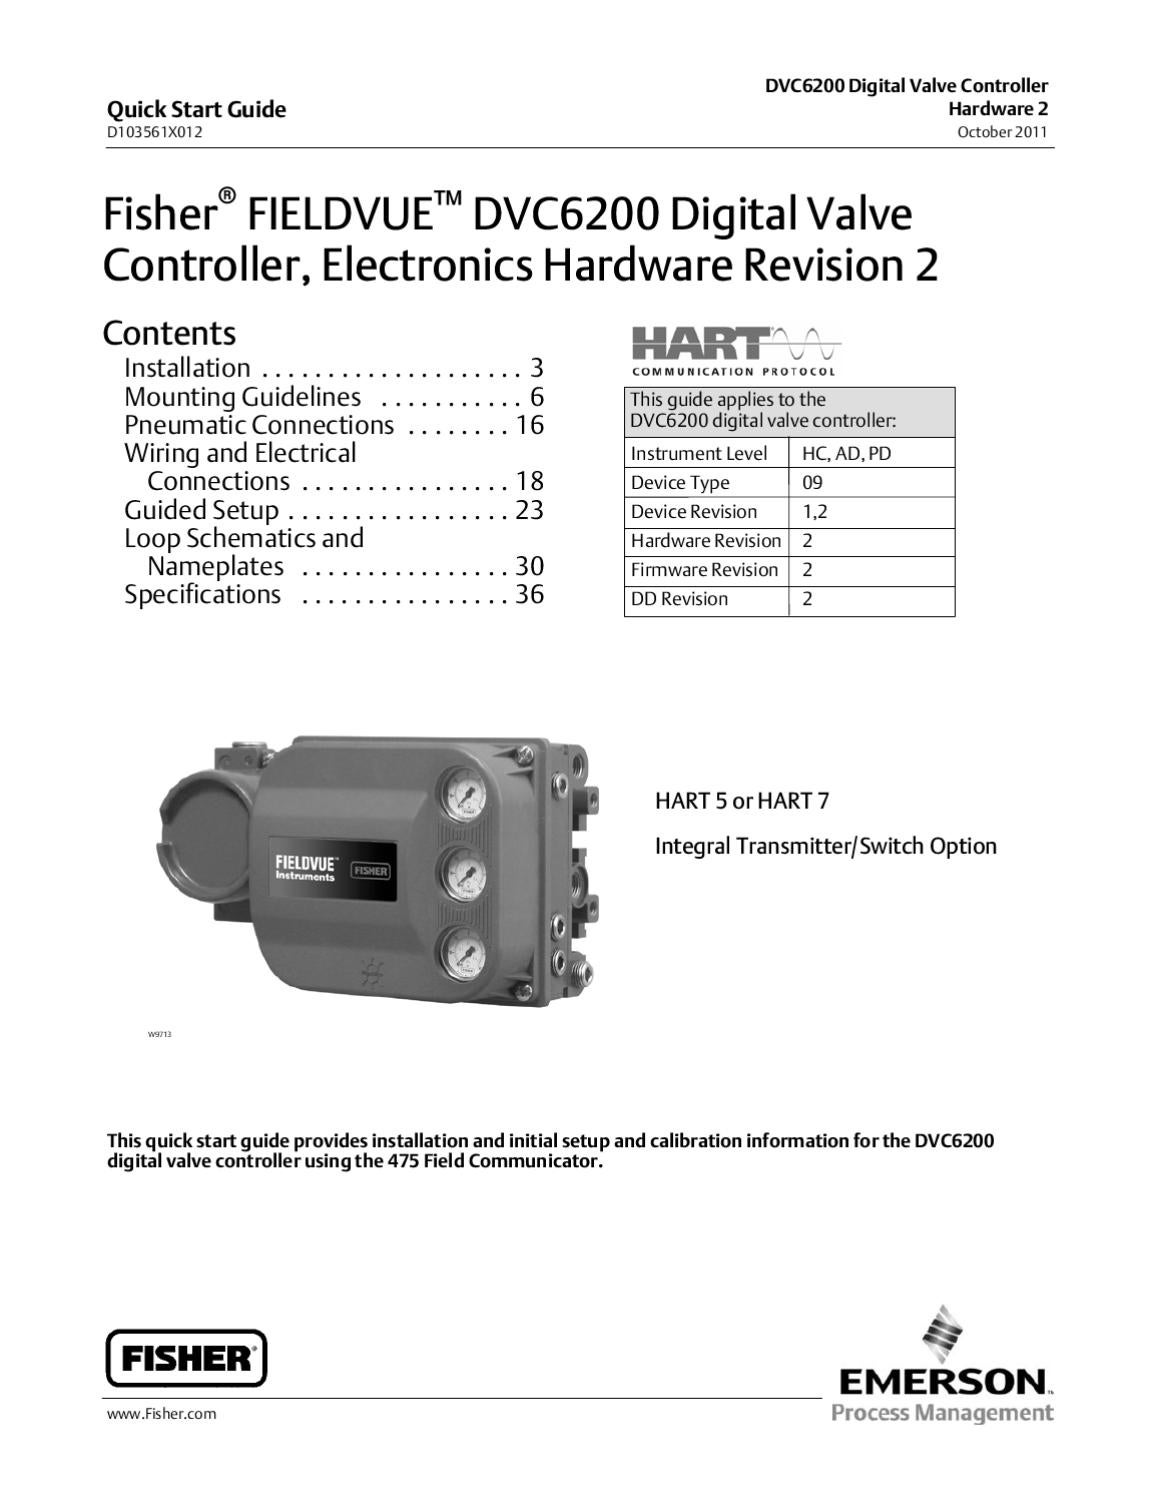 hight resolution of dvc6200 quick start guide elctrncs hrdwre rev 2 oct 2011 by rmc rh issuu com 4 ohm dvc wiring 4 ohm dvc wiring